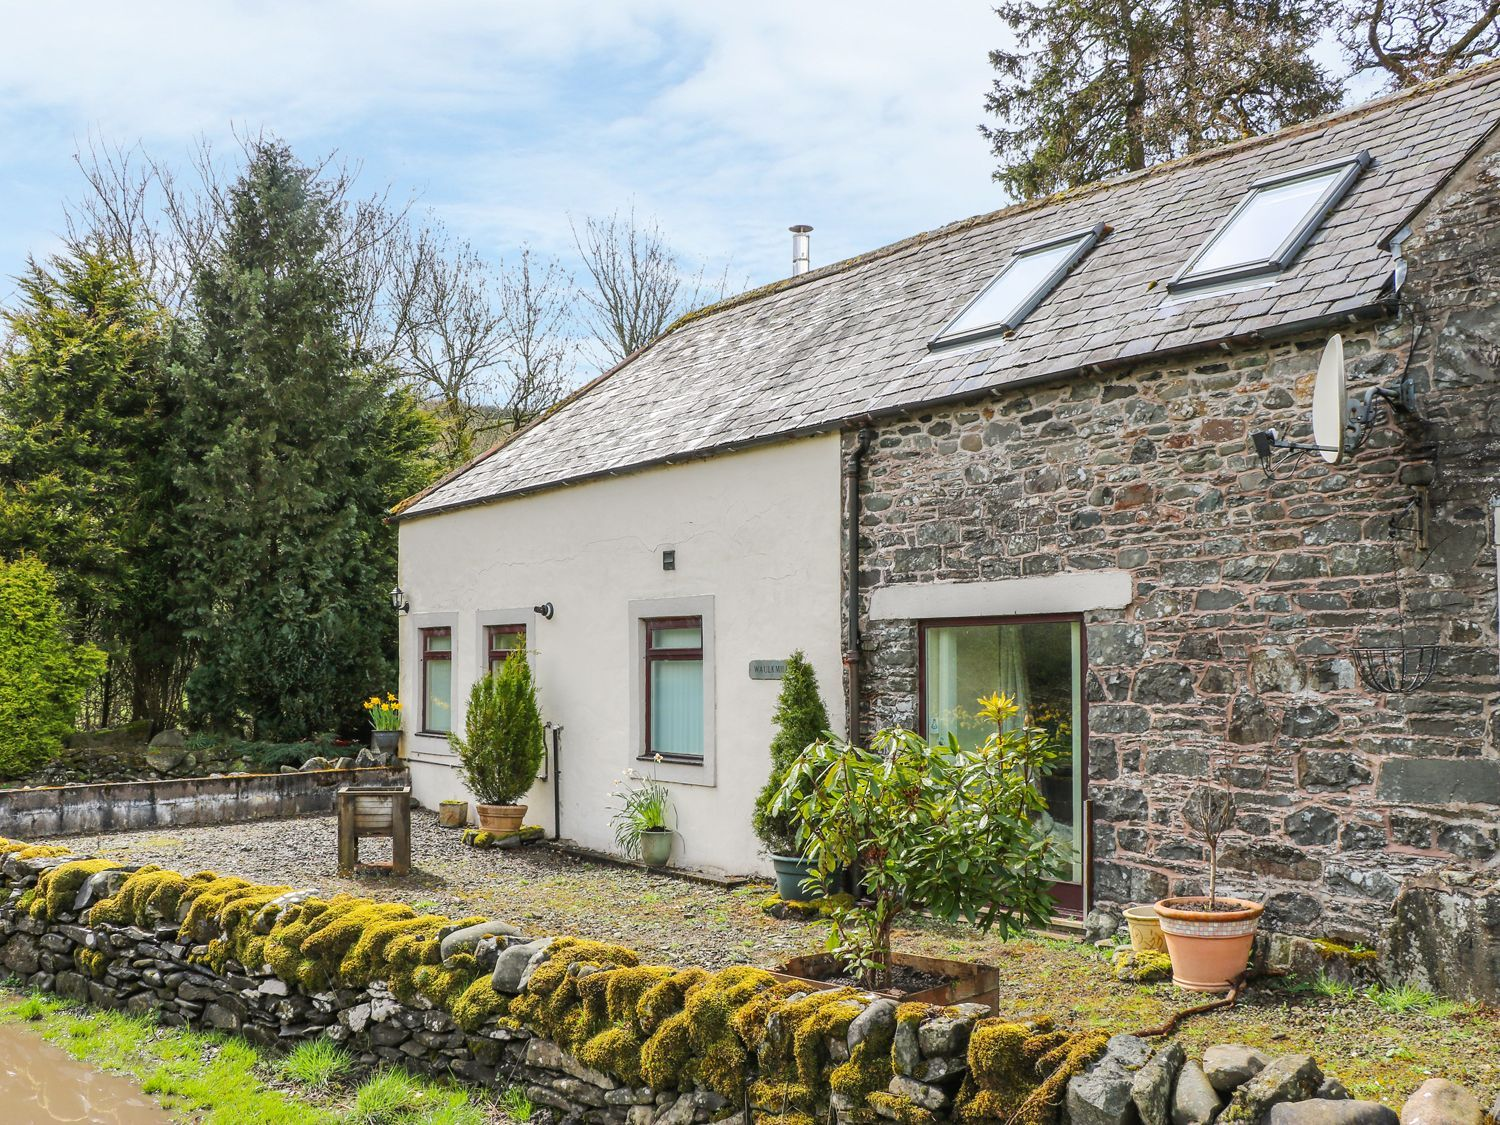 This semidetached cottage is located near the village of